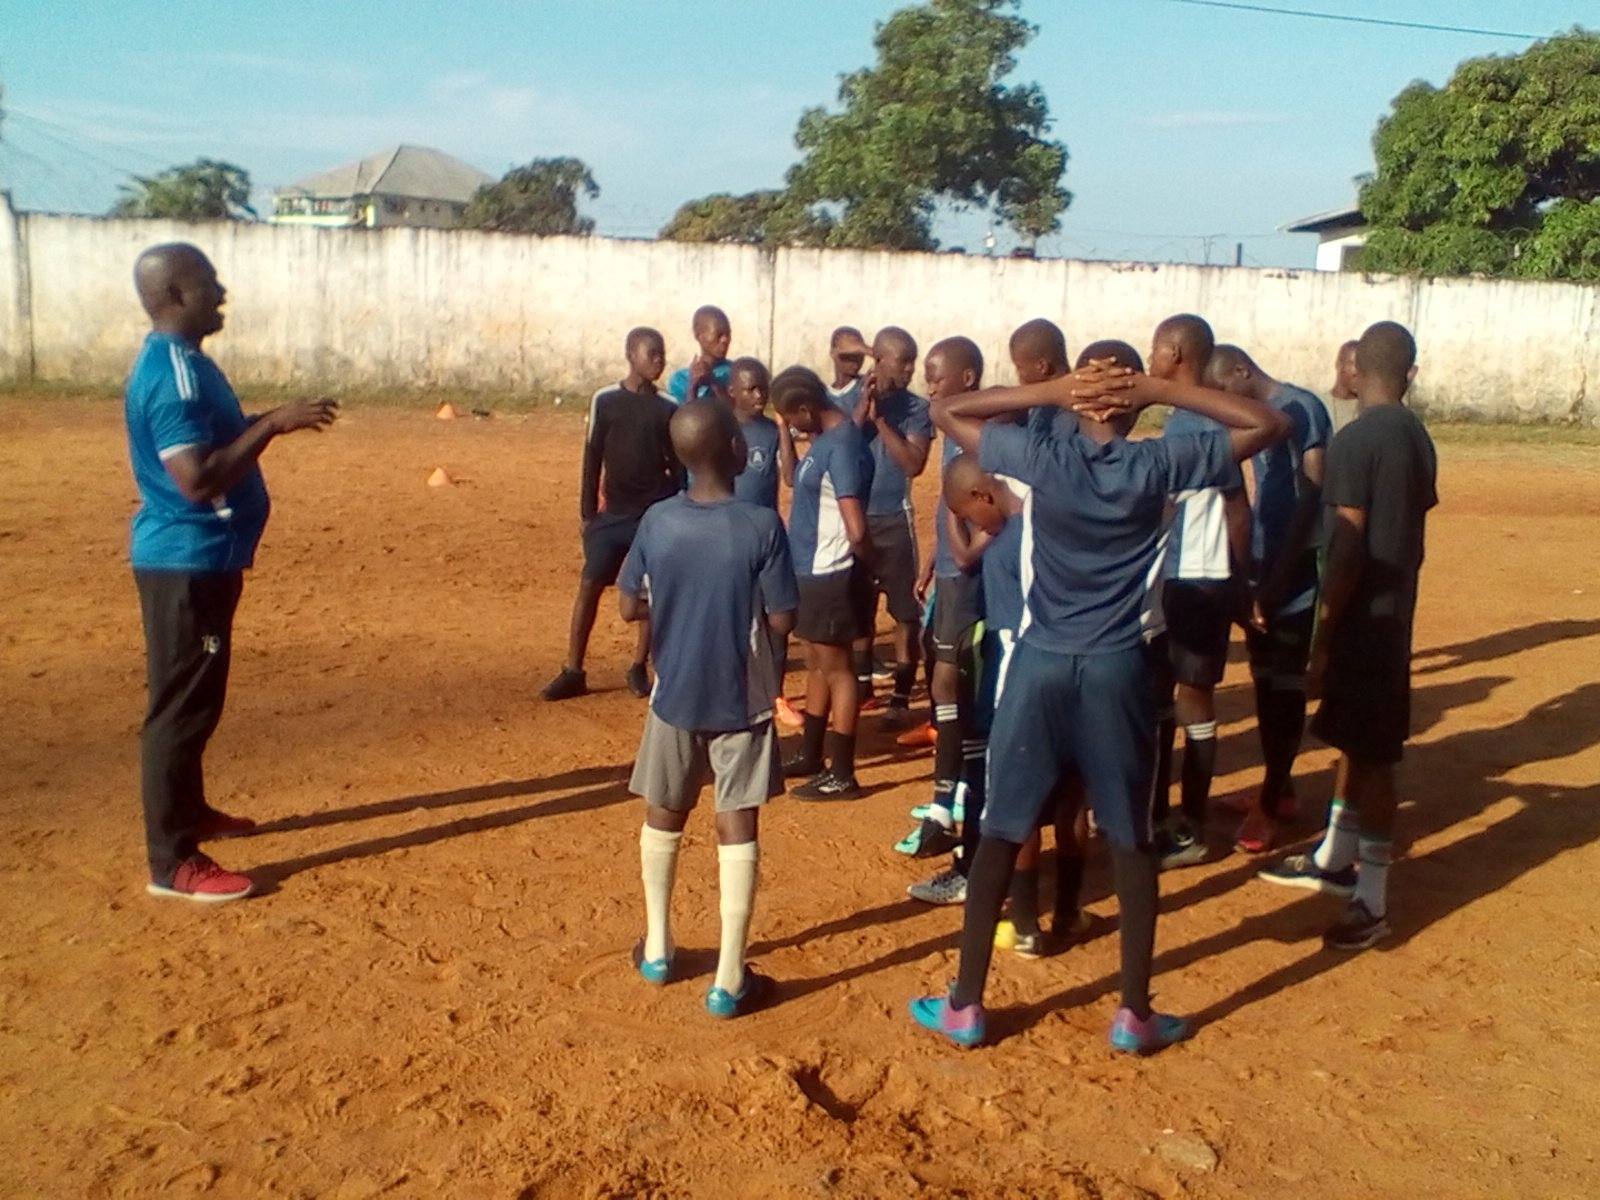 Pappie Jones coaches a young team in Liberia